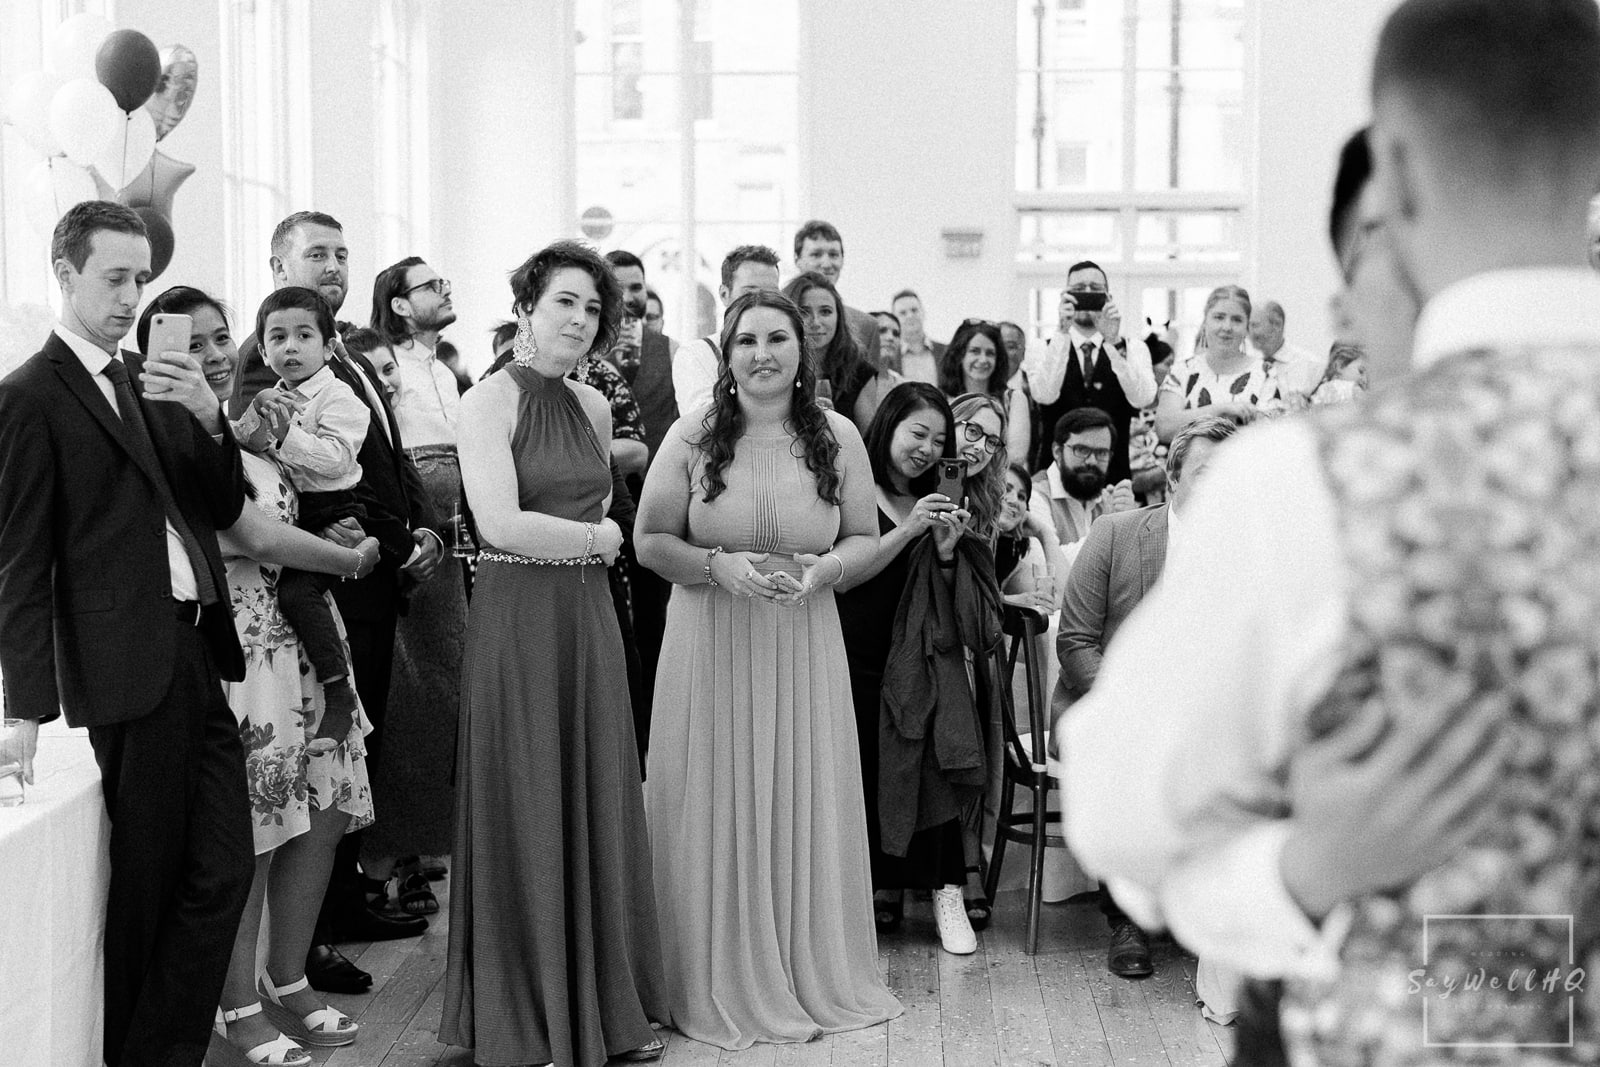 Nottingham Wedding Photography - Same sex wedding photography Nottingham - wedding guests looking on during the wedding first dance